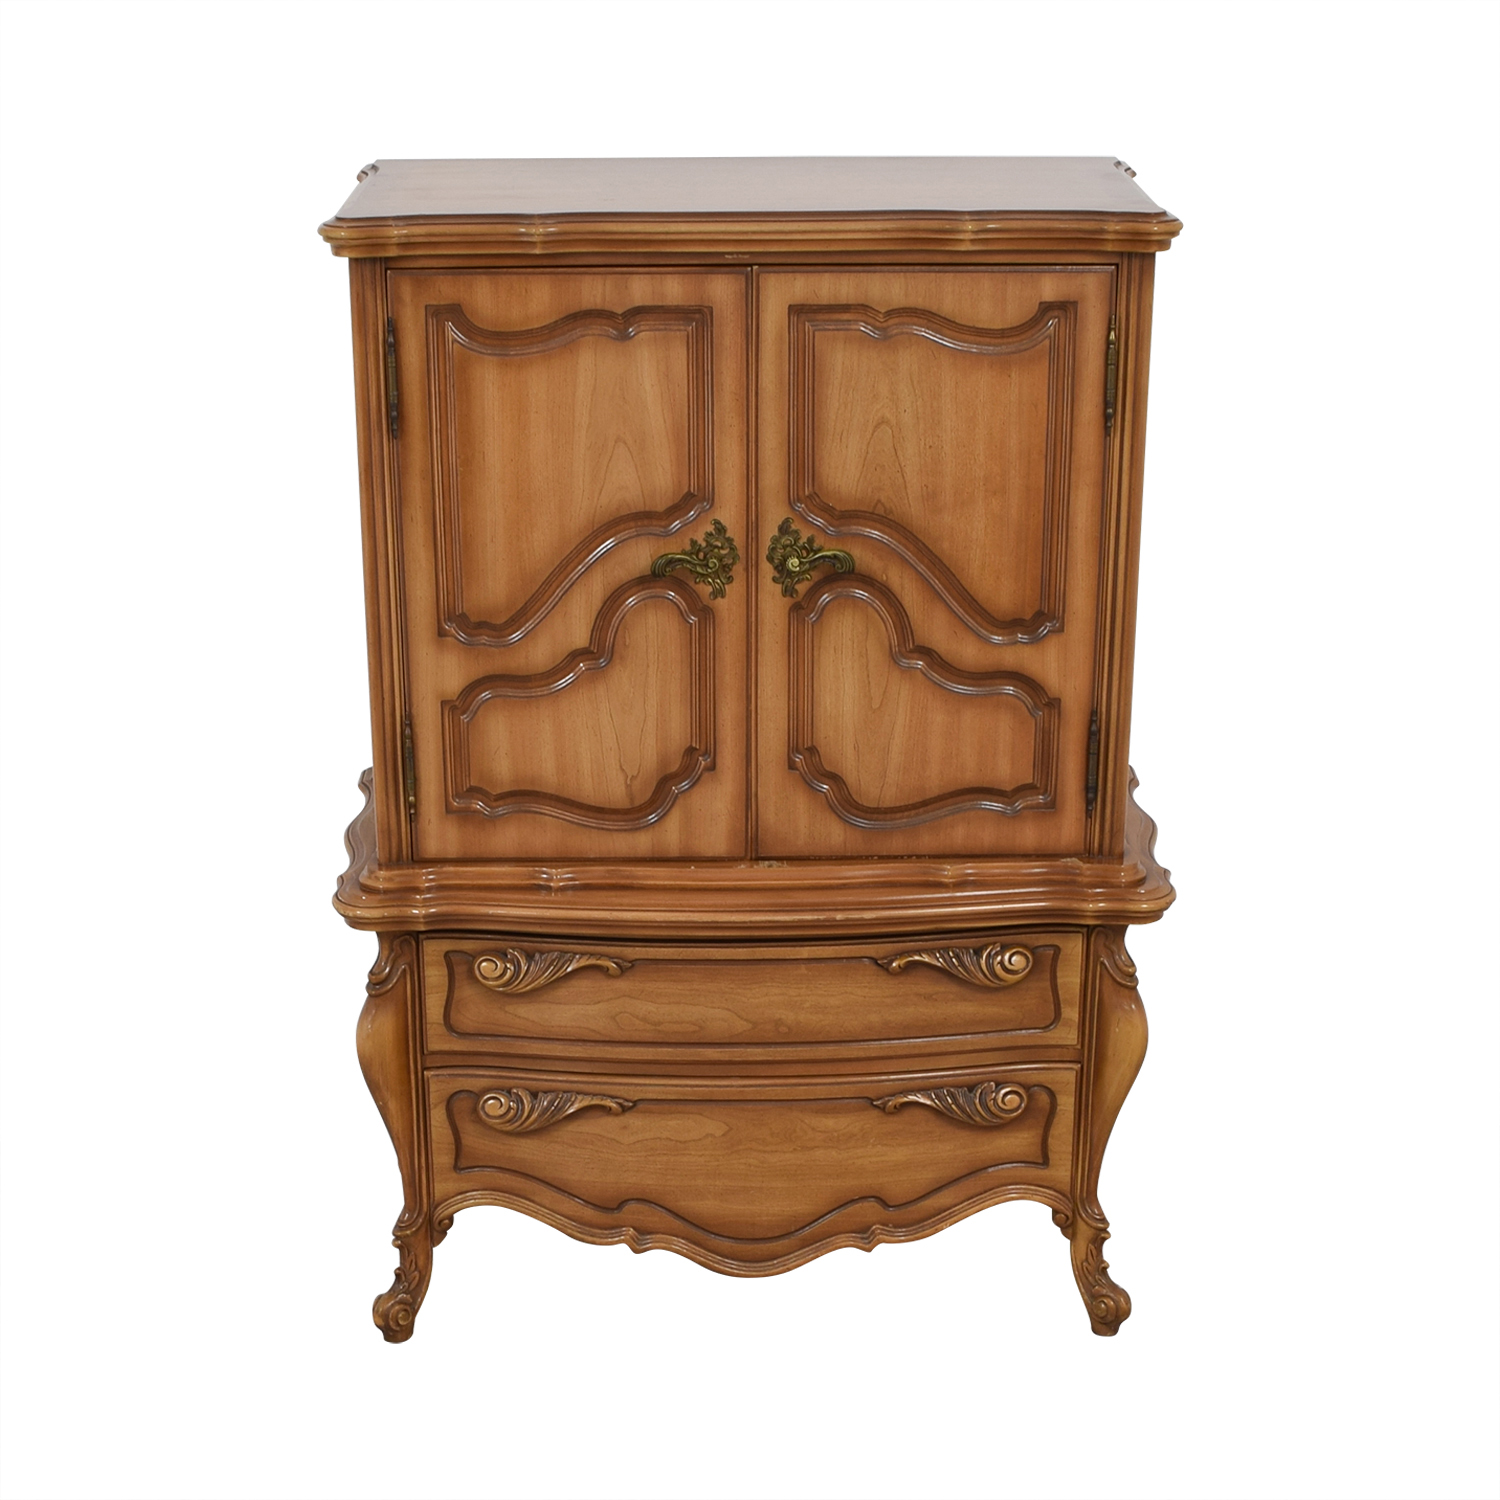 Dovetailed Carved Wood Chest of Drawers Armoire